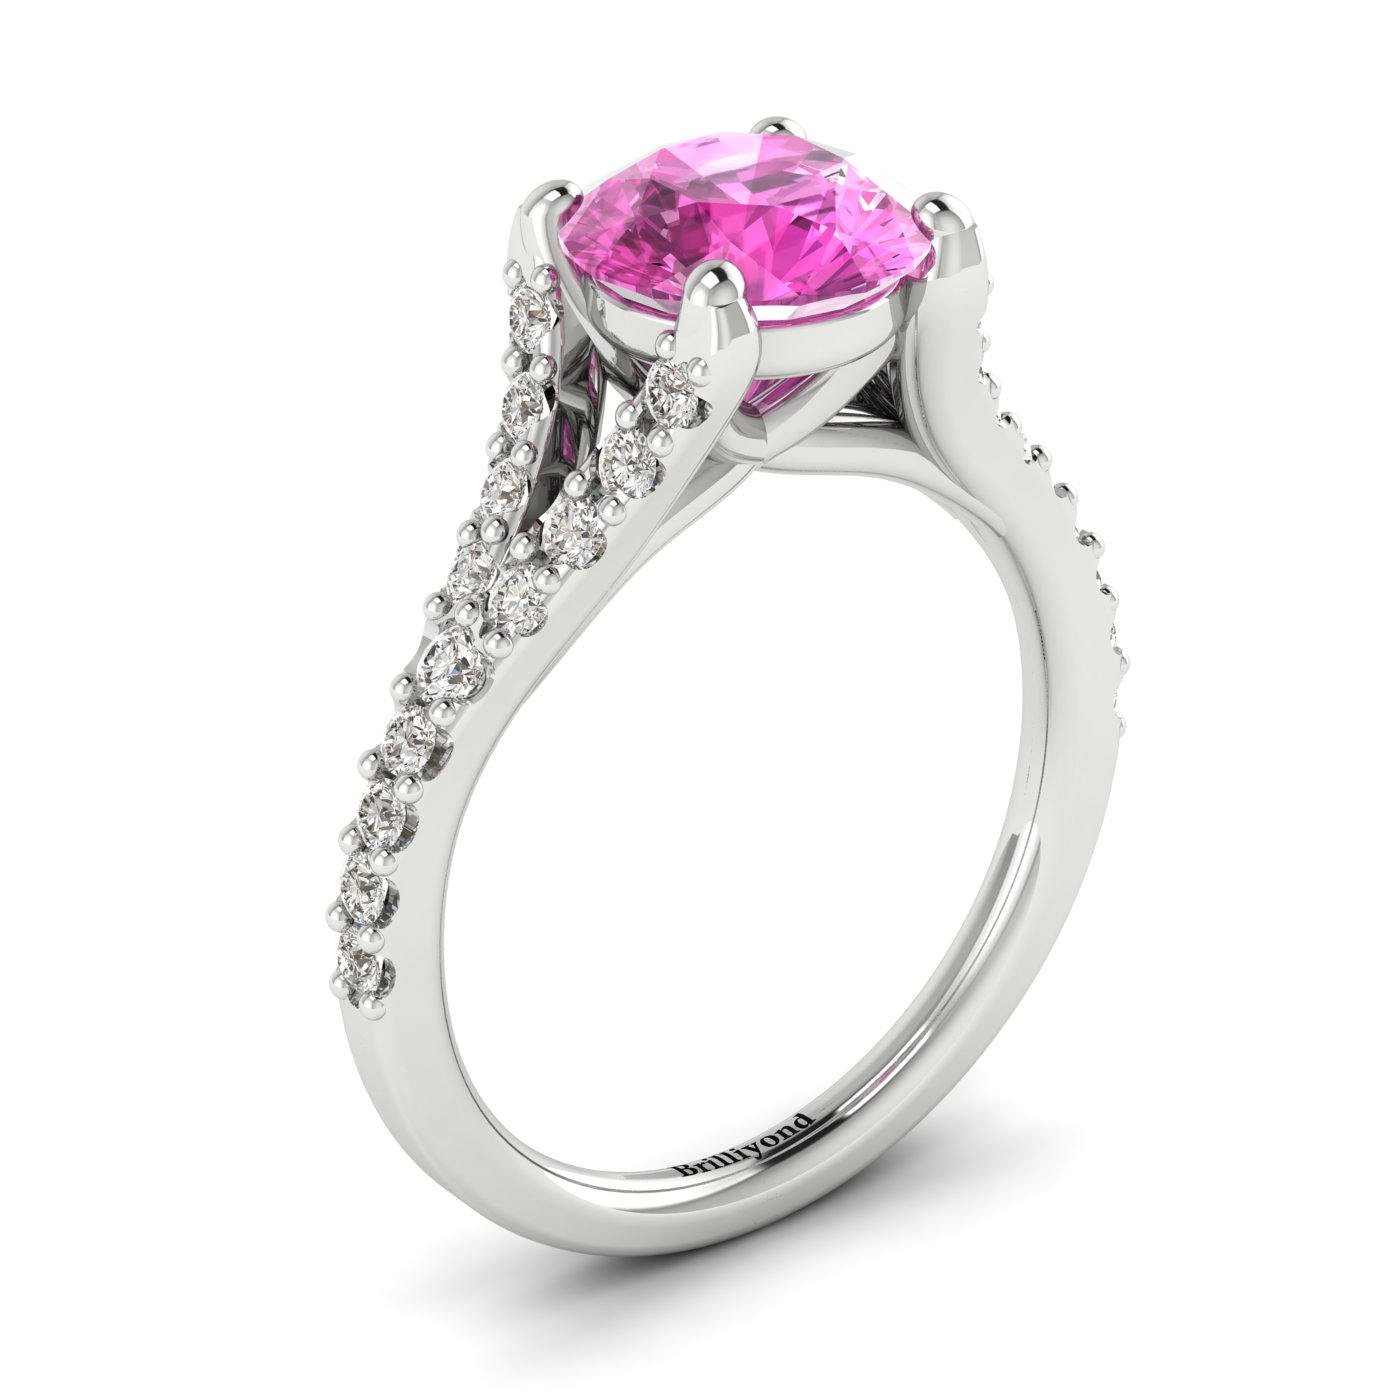 Affordable 18k white gold engagement ring with 6mm round cut pink sapphire centre stone.